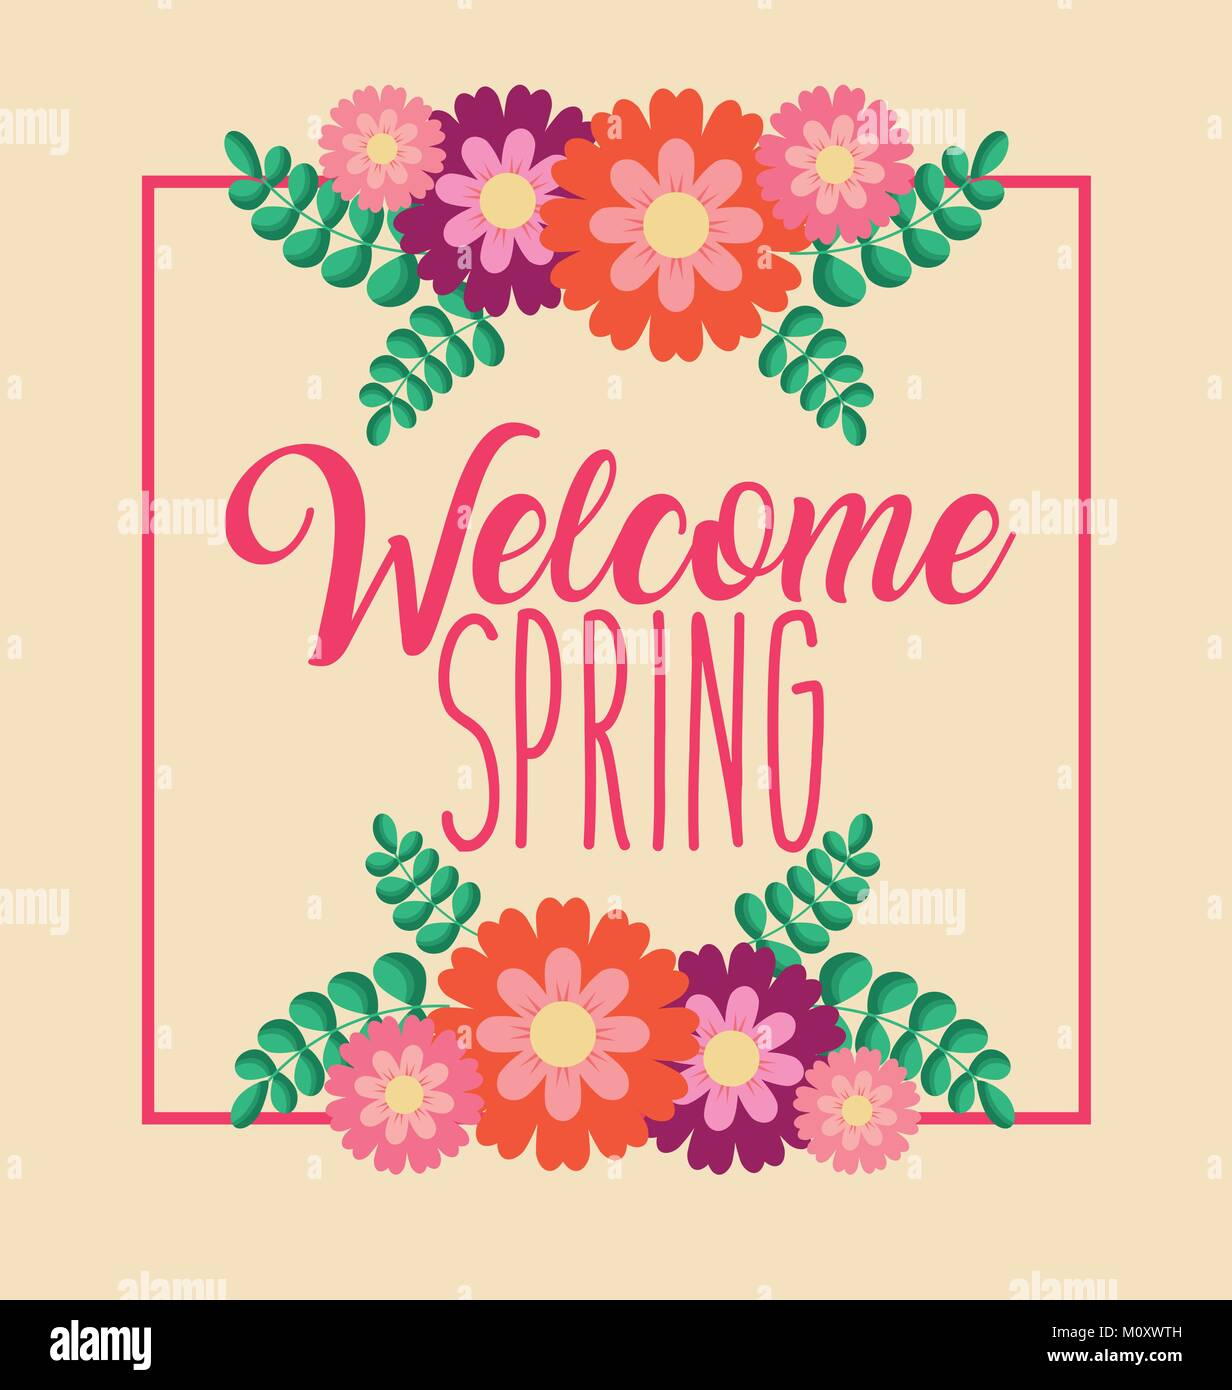 Welcome spring greeting card celebration flowers natural stock welcome spring greeting card celebration flowers natural kristyandbryce Choice Image